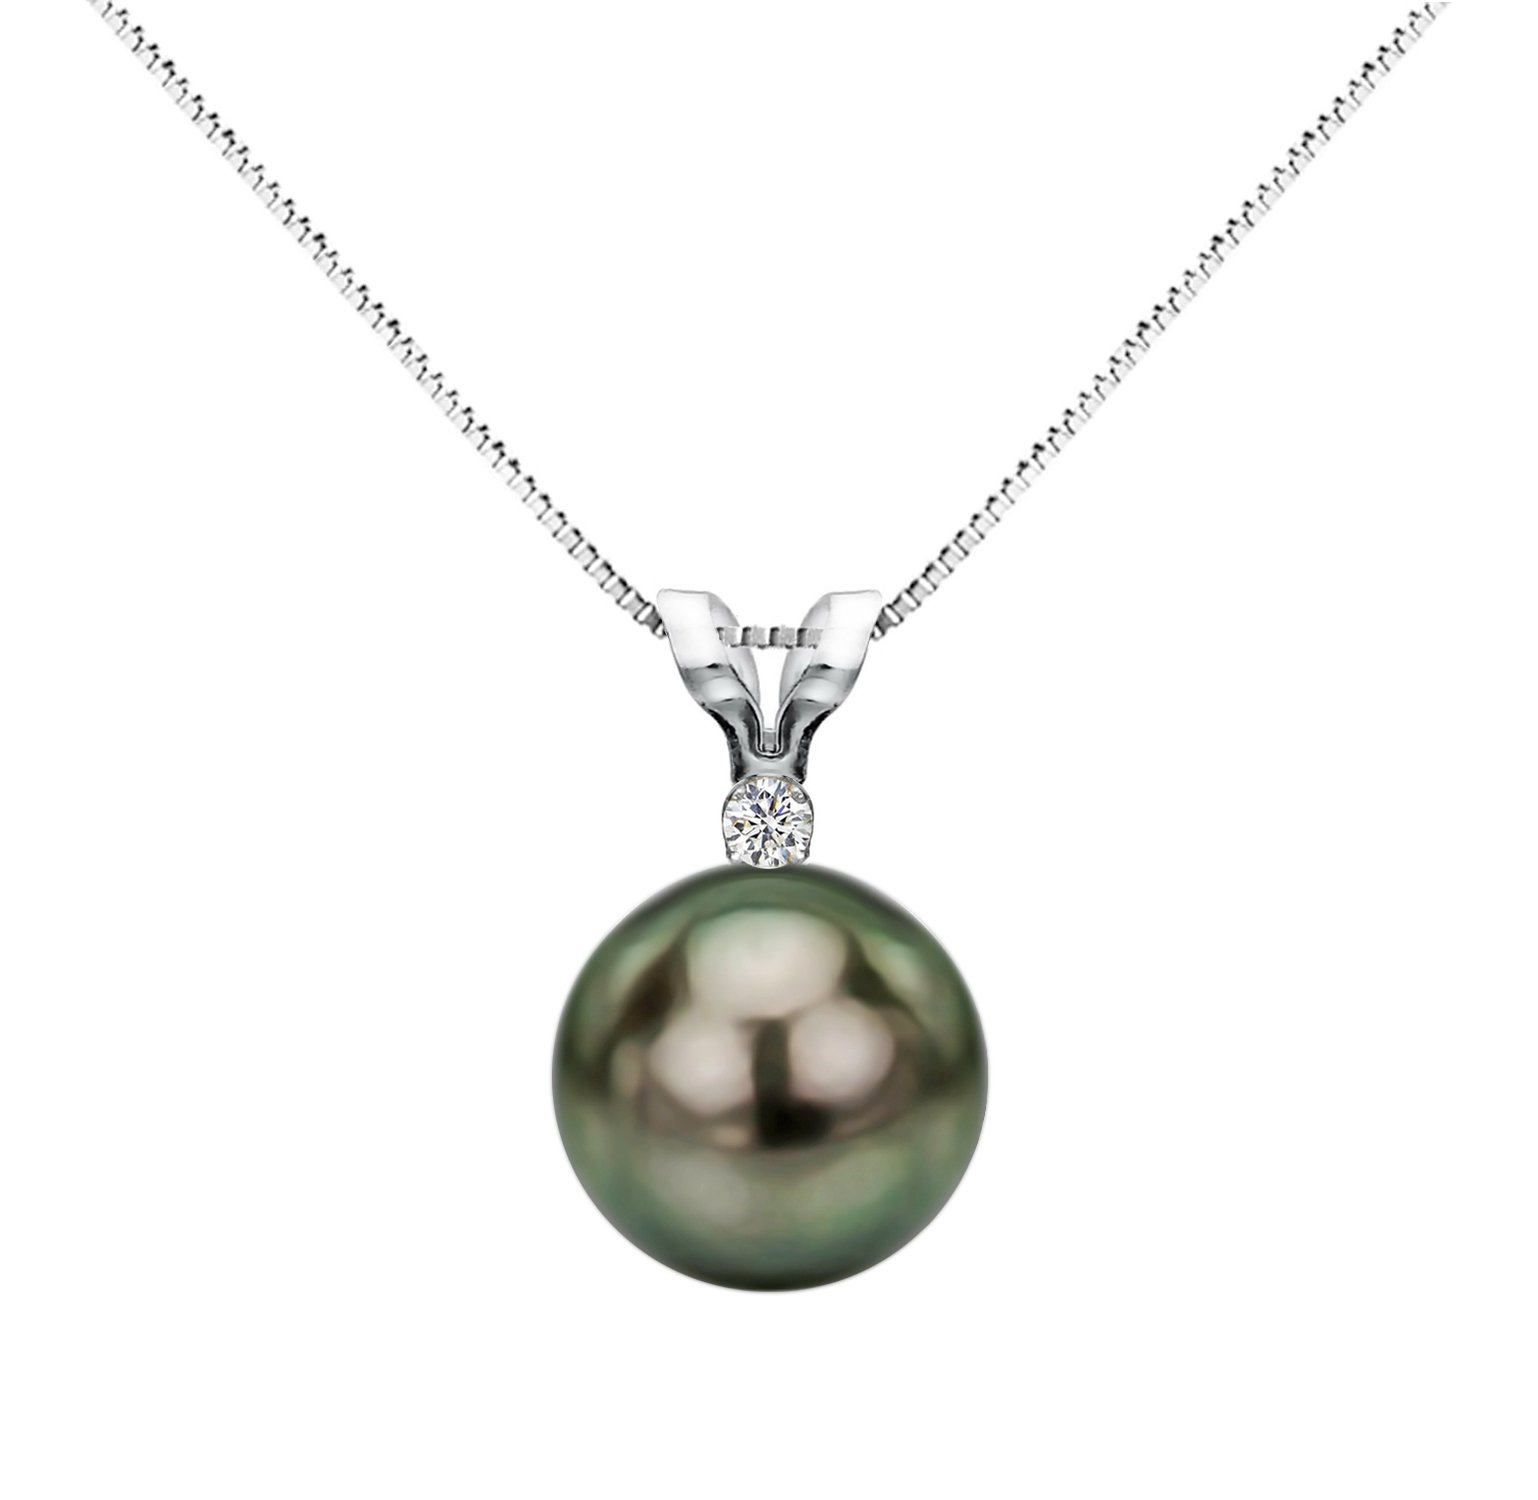 14k White Gold 1/100cttw Diamond Pendant Necklace South Sea Tahitian Cultured Pearl Jewelry AAA 8-8.5mm